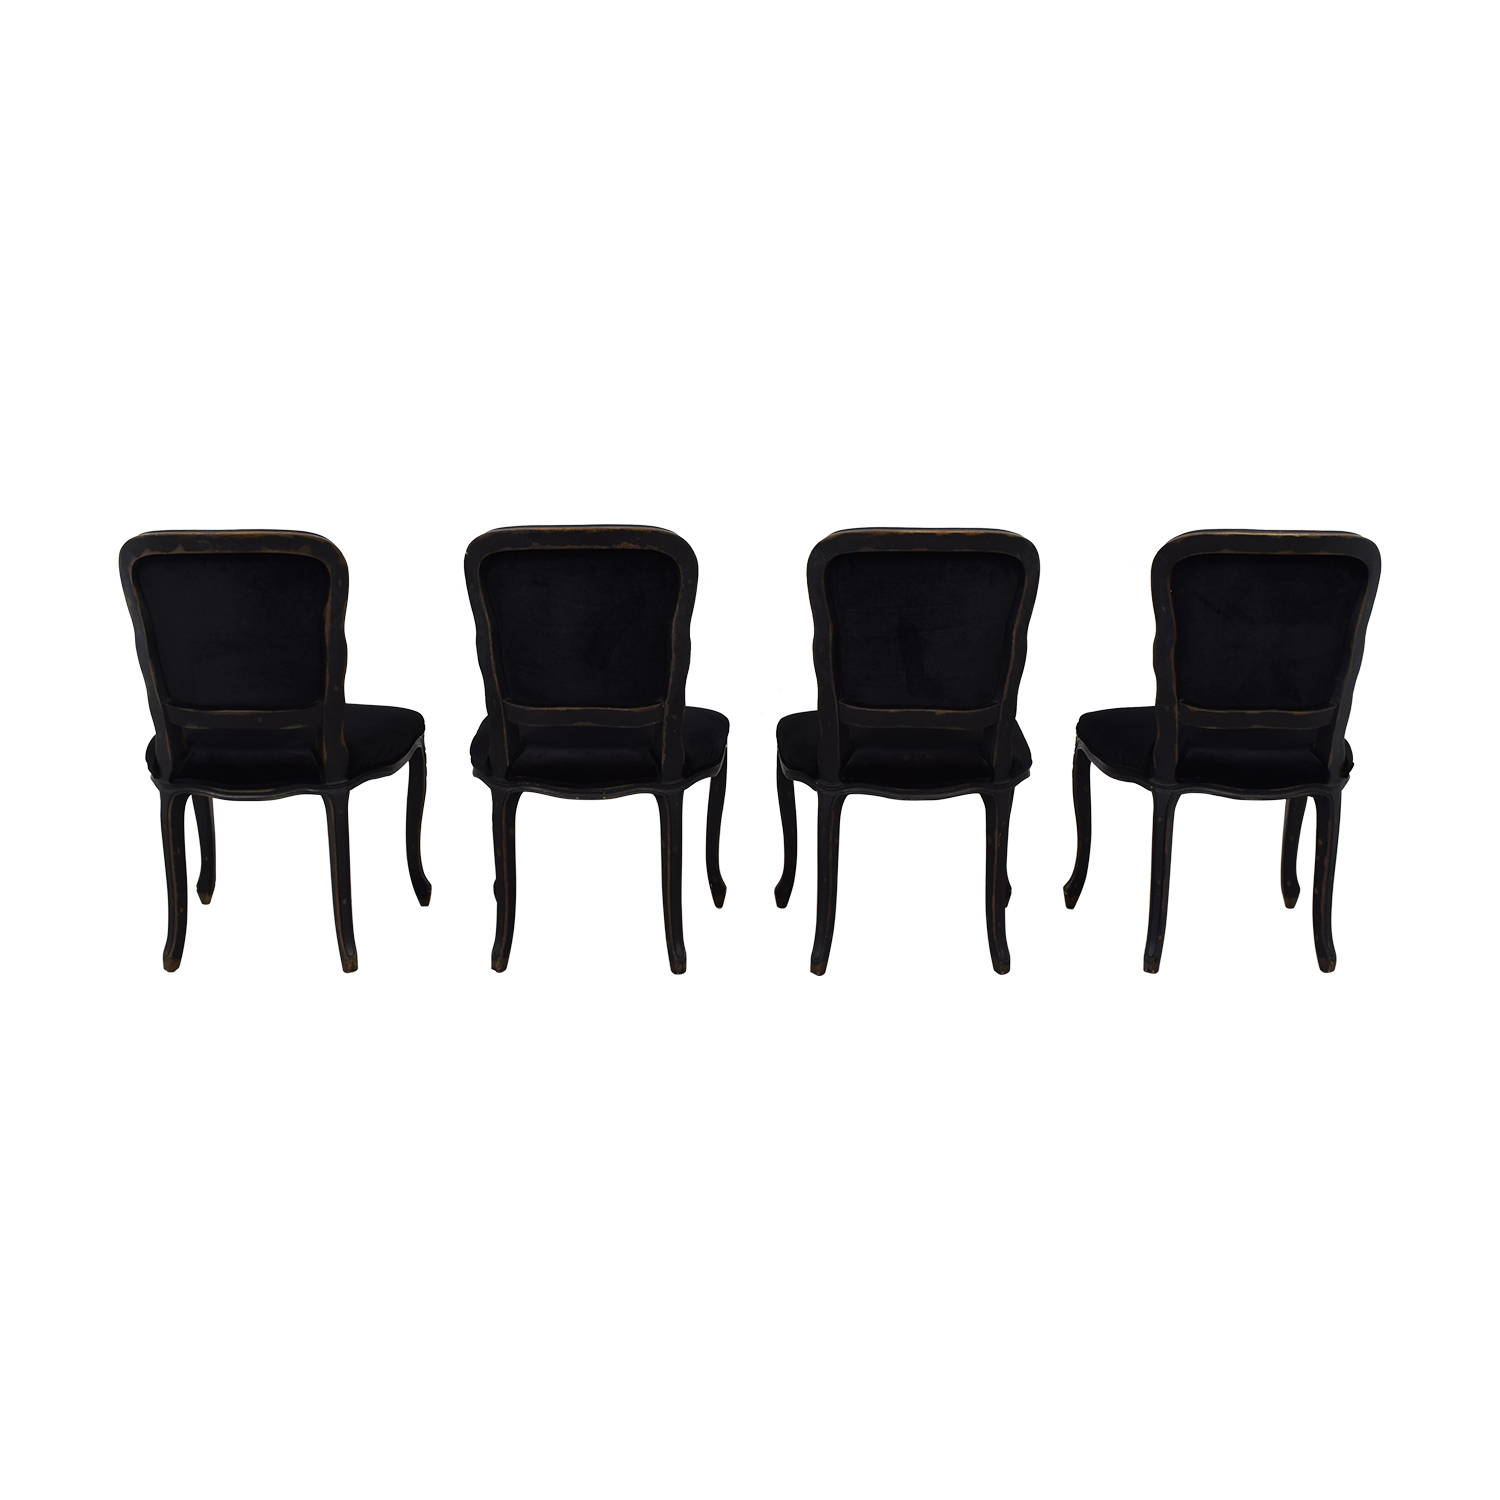 Parker House Dining Chairs used